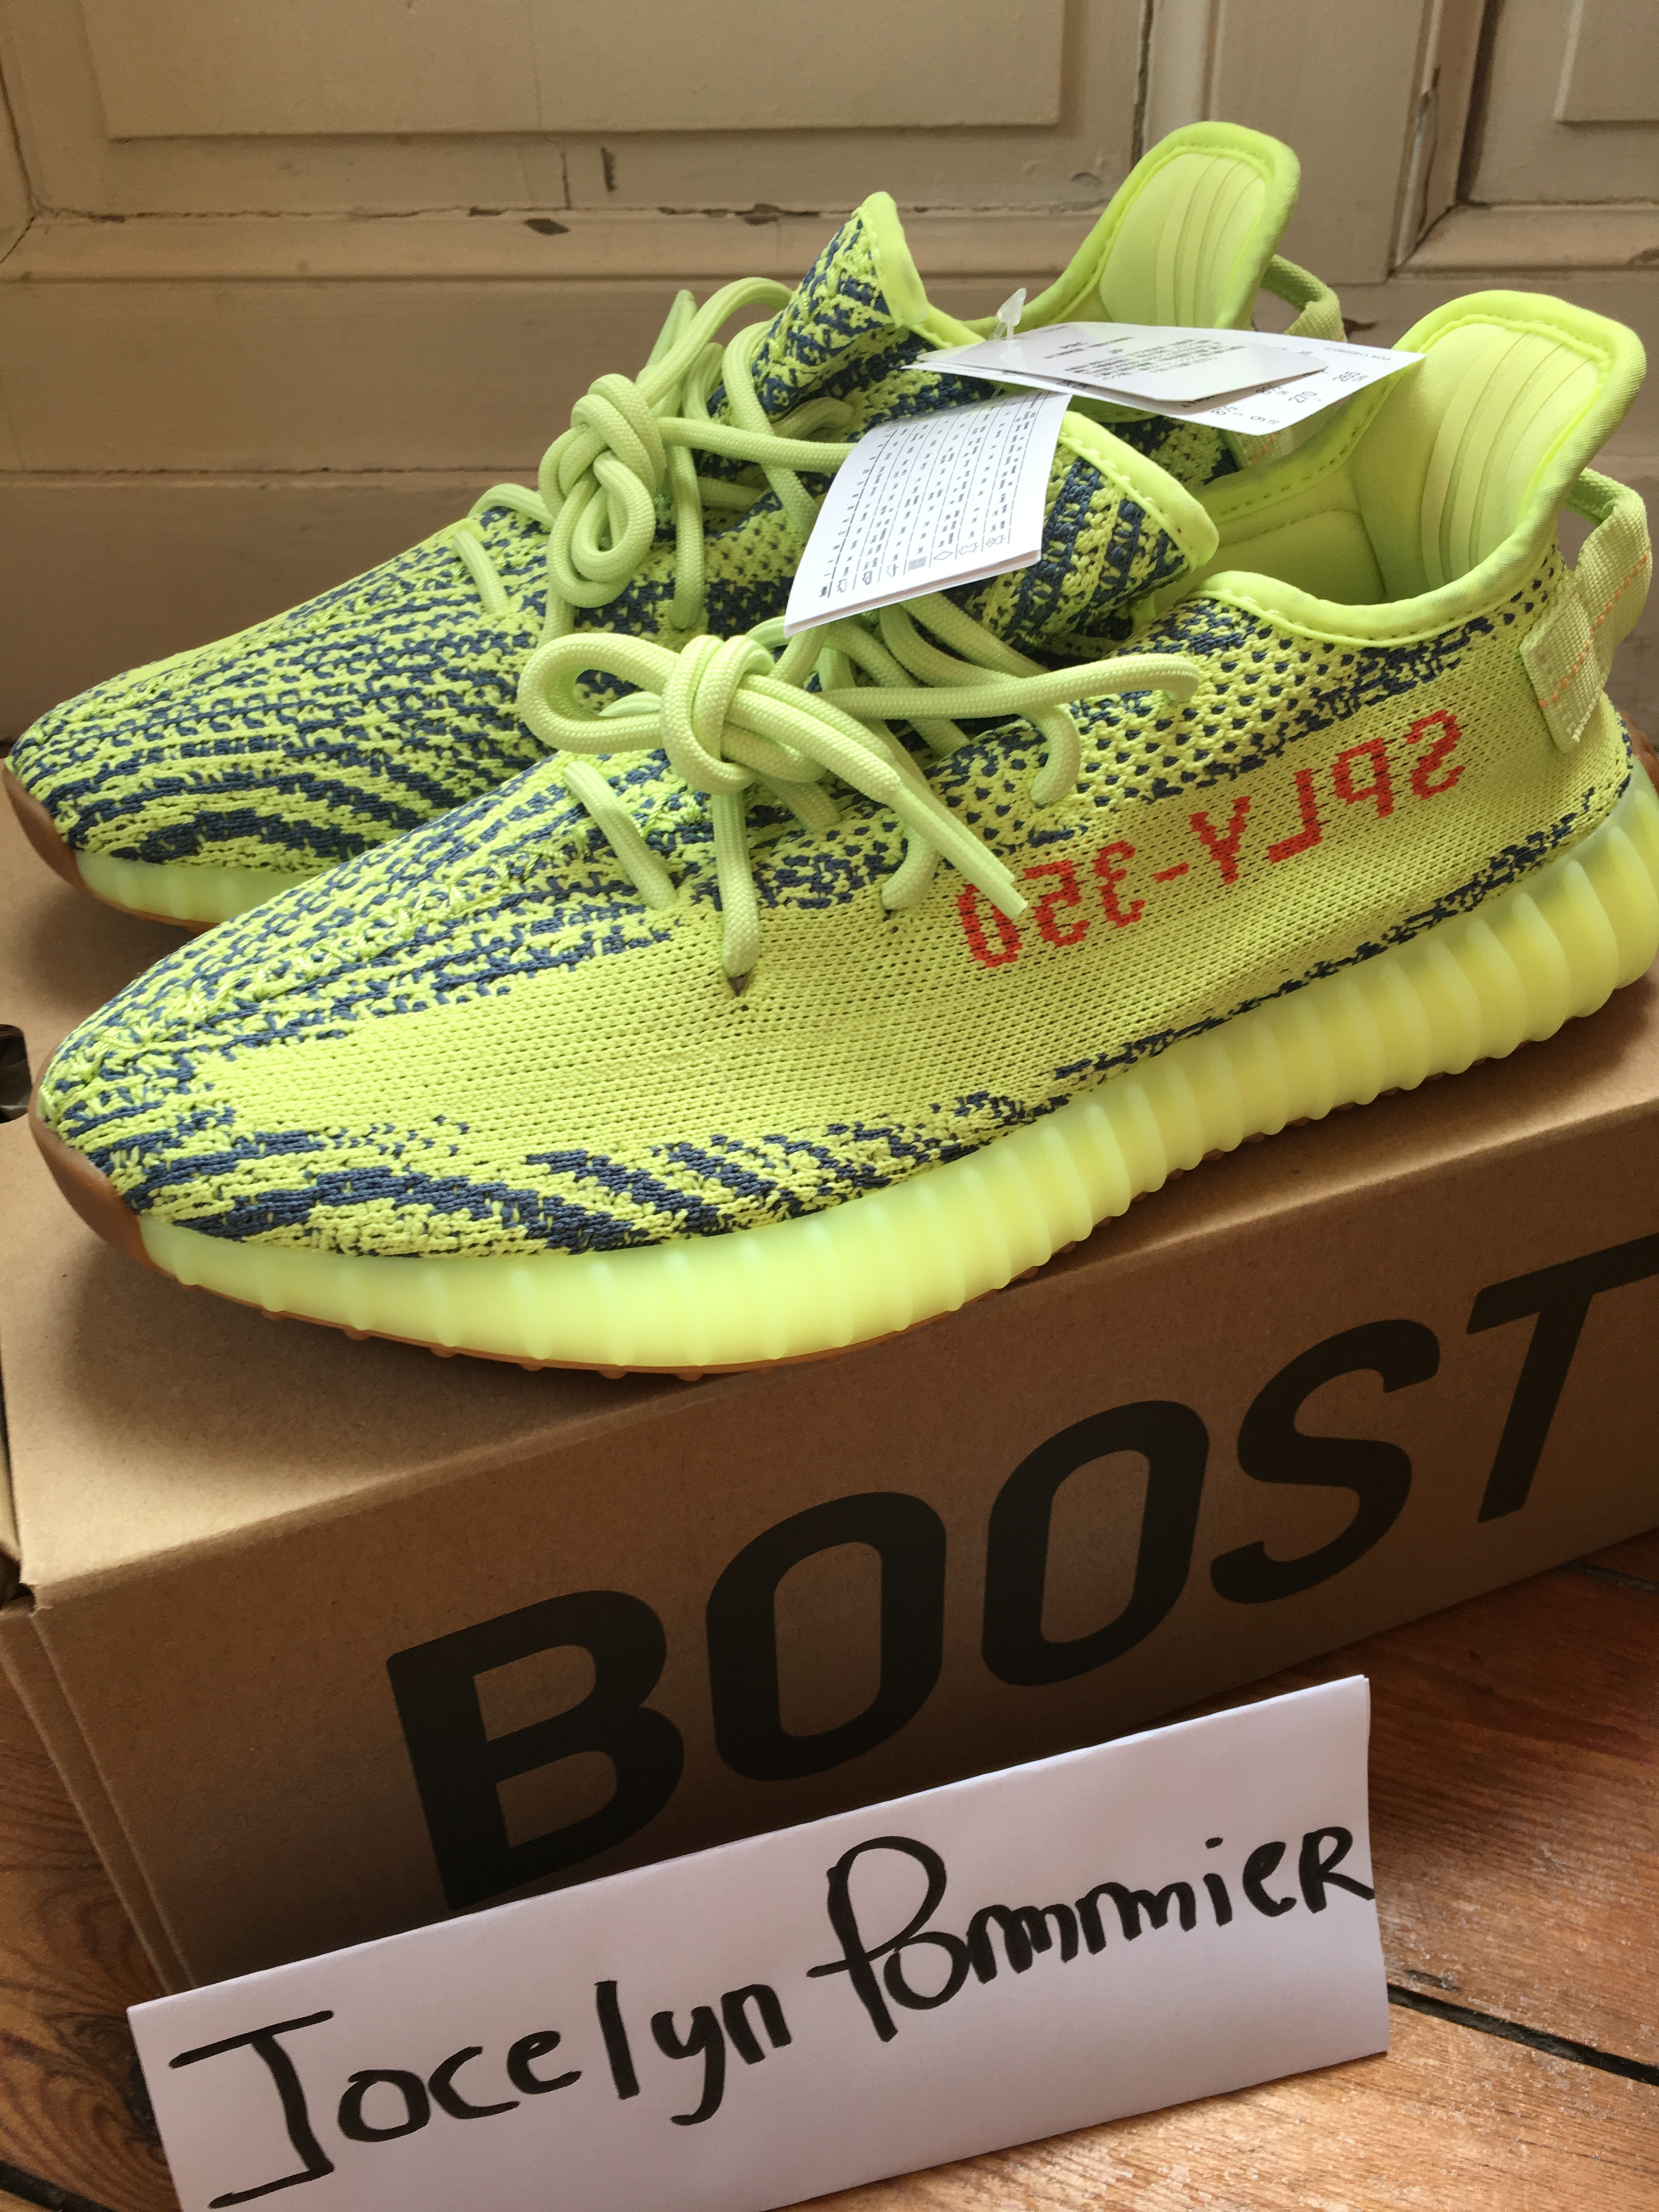 3a66d5e63af4d Yeezy Boost 350 V2 Semi Frozen Yellow Size 9 - Low-Top Sneakers for Sale -  Grailed